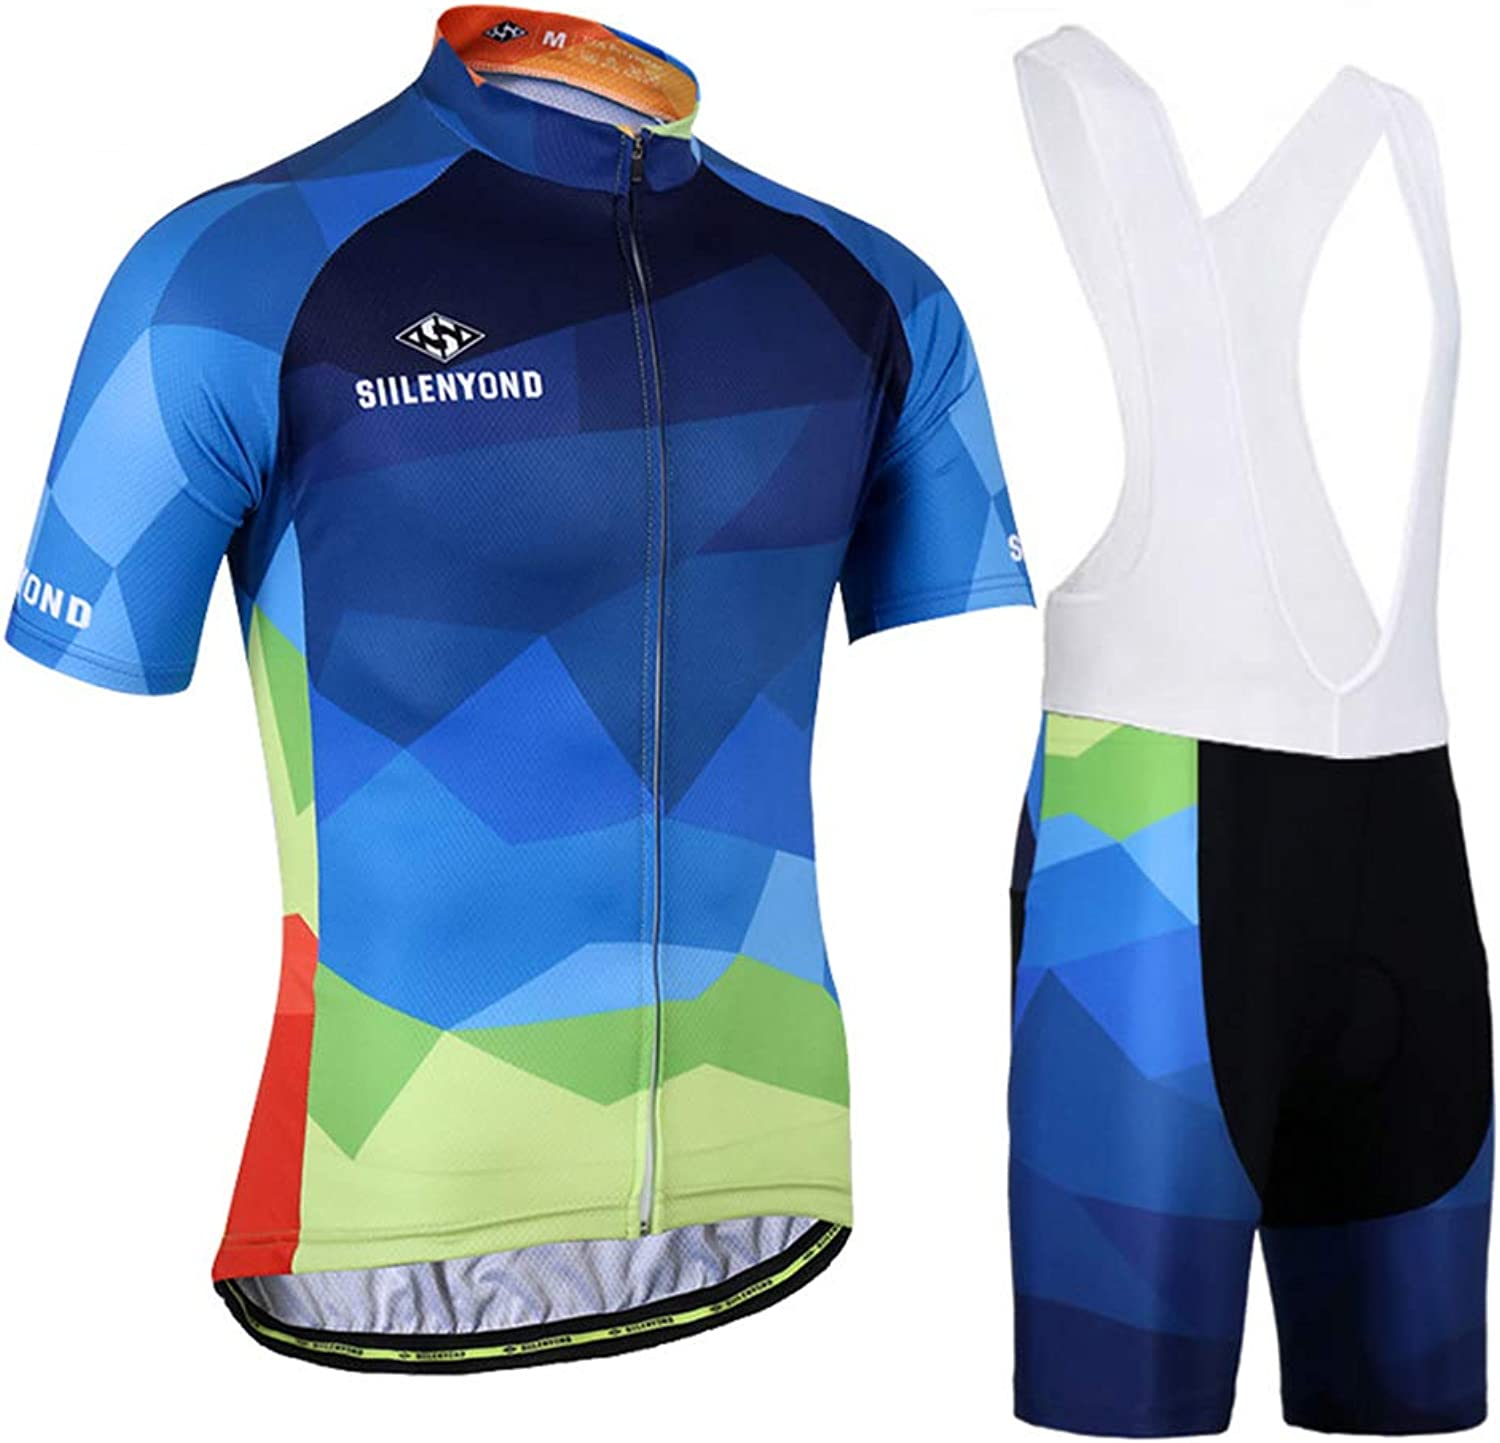 Unisex Cycling Clothing Suit for Summer Bicycle Suit Short Sleeve 3D Padded Bib Siamese Shorts,S